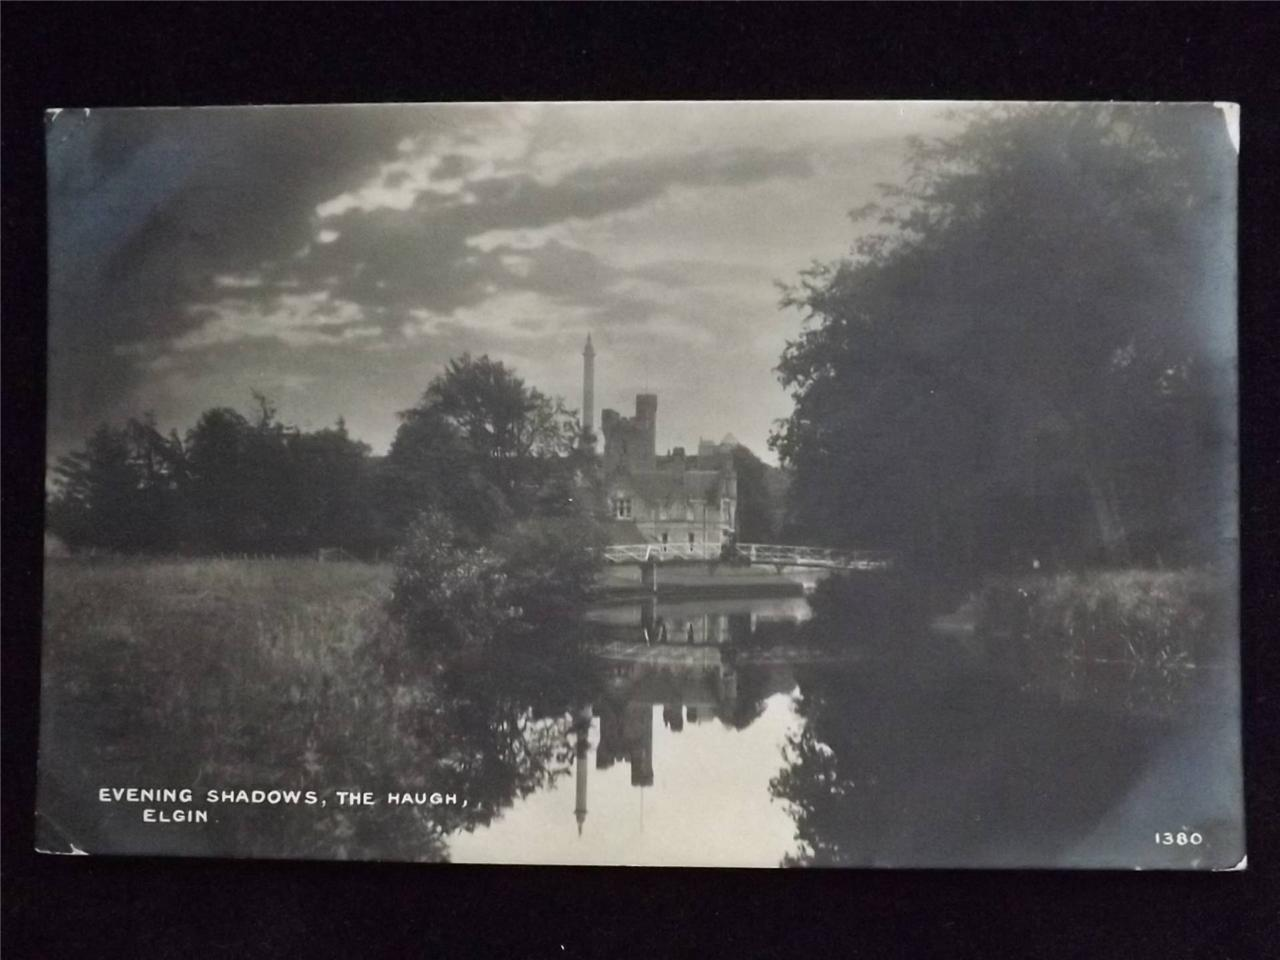 OLD-POSTCARD-OF-EVENING-SHADOWS-THE-HAUGH-ELGIN-USED-1919